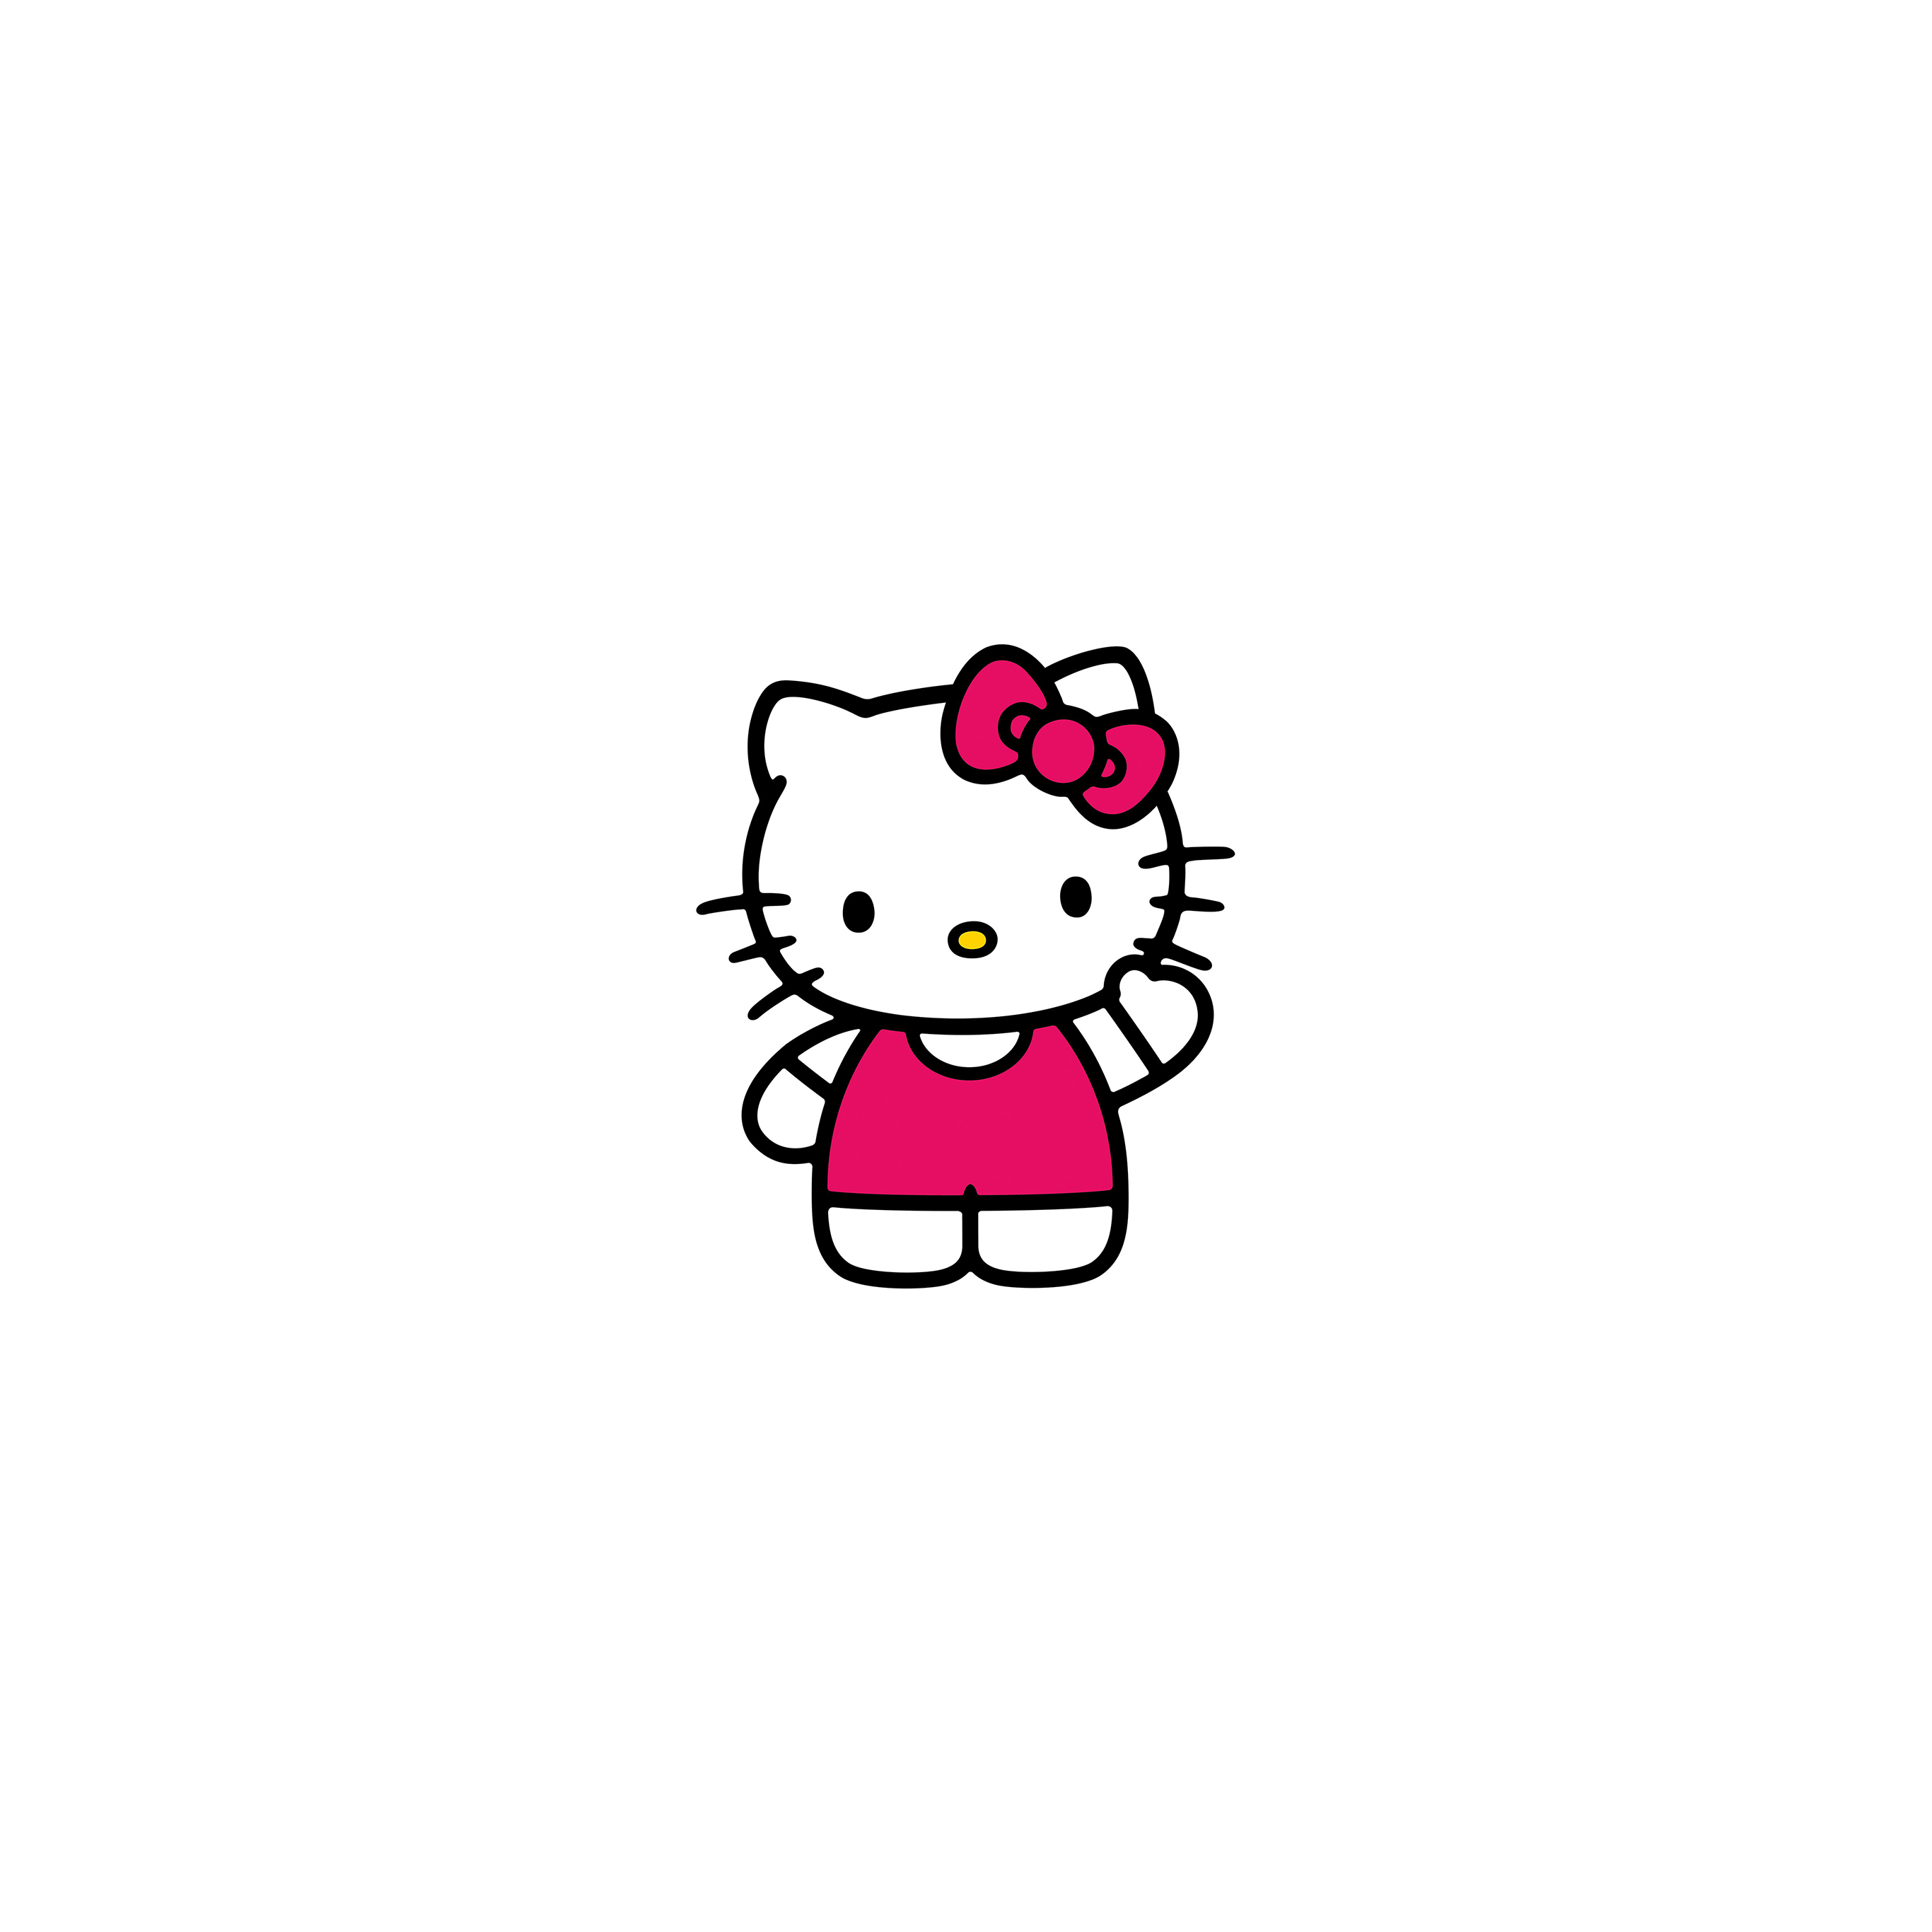 Cool Wallpaper Hello Kitty Ipad - papers  Image_232757.jpg